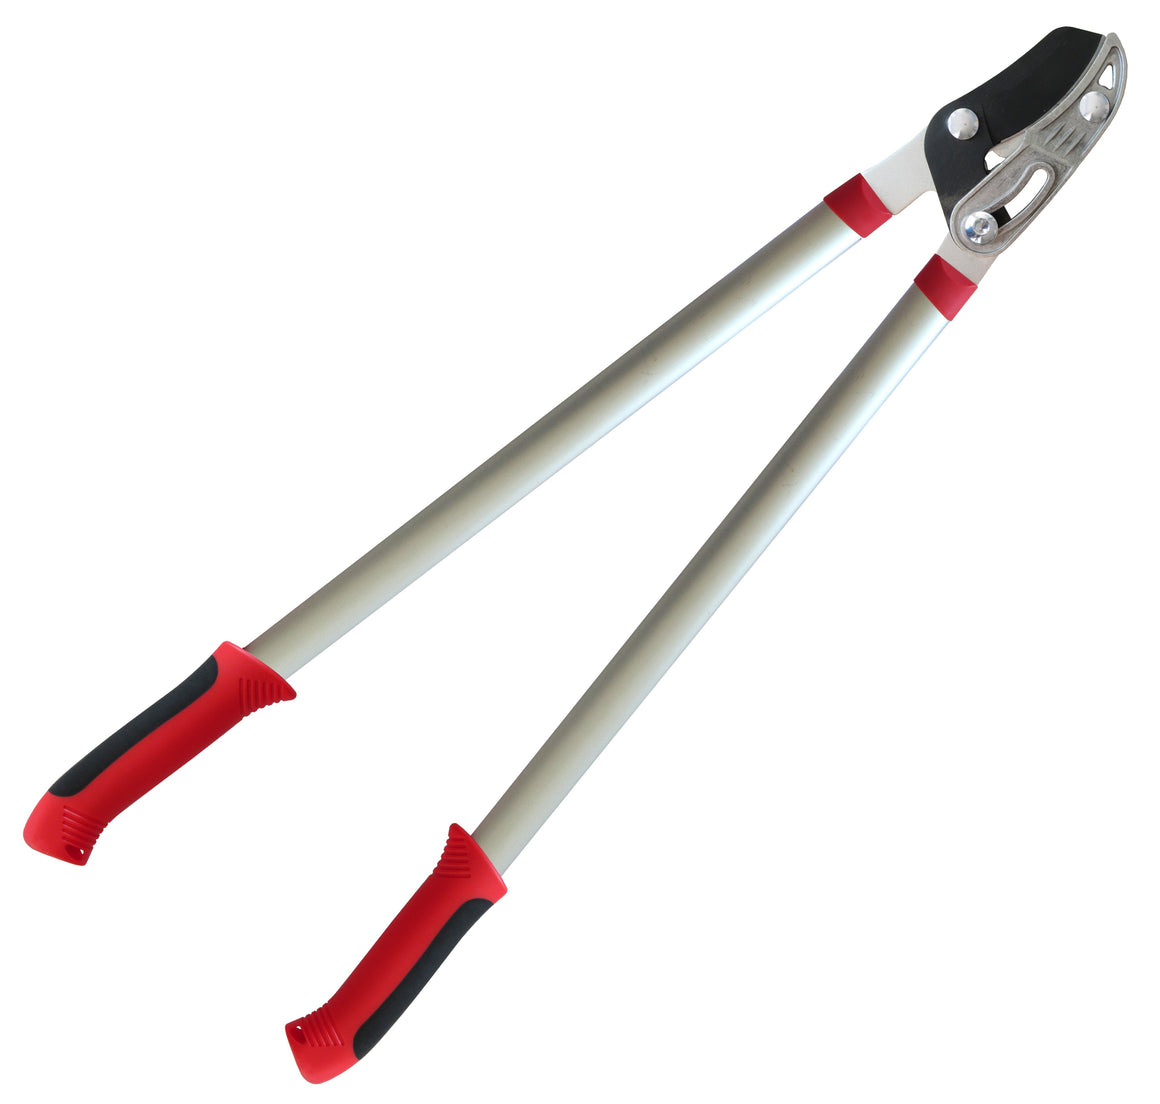 TABOR TOOLS GB30A Aluminum Anvil Lopper, 30 Inch Aluminum Handles with Comfort Grip